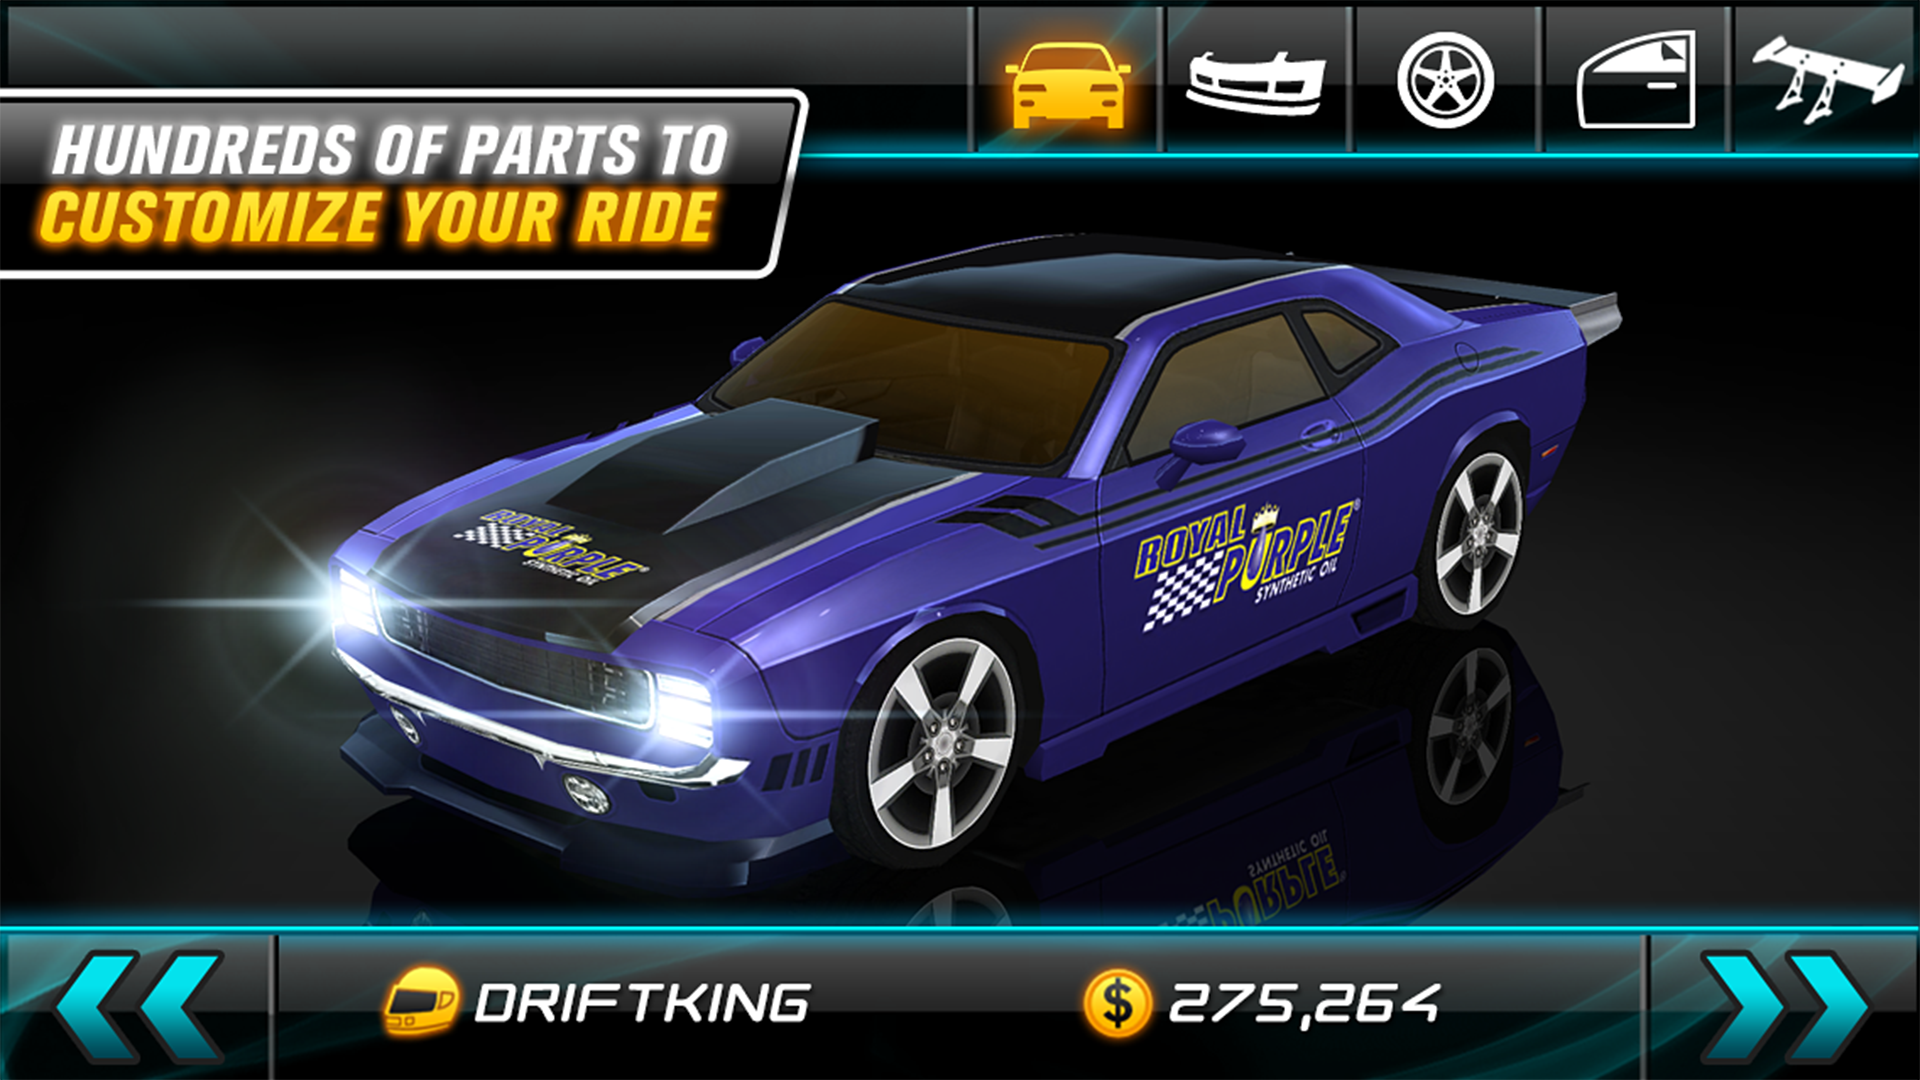 Amazon.com: Drift Mania: Street Outlaws: Appstore for Android